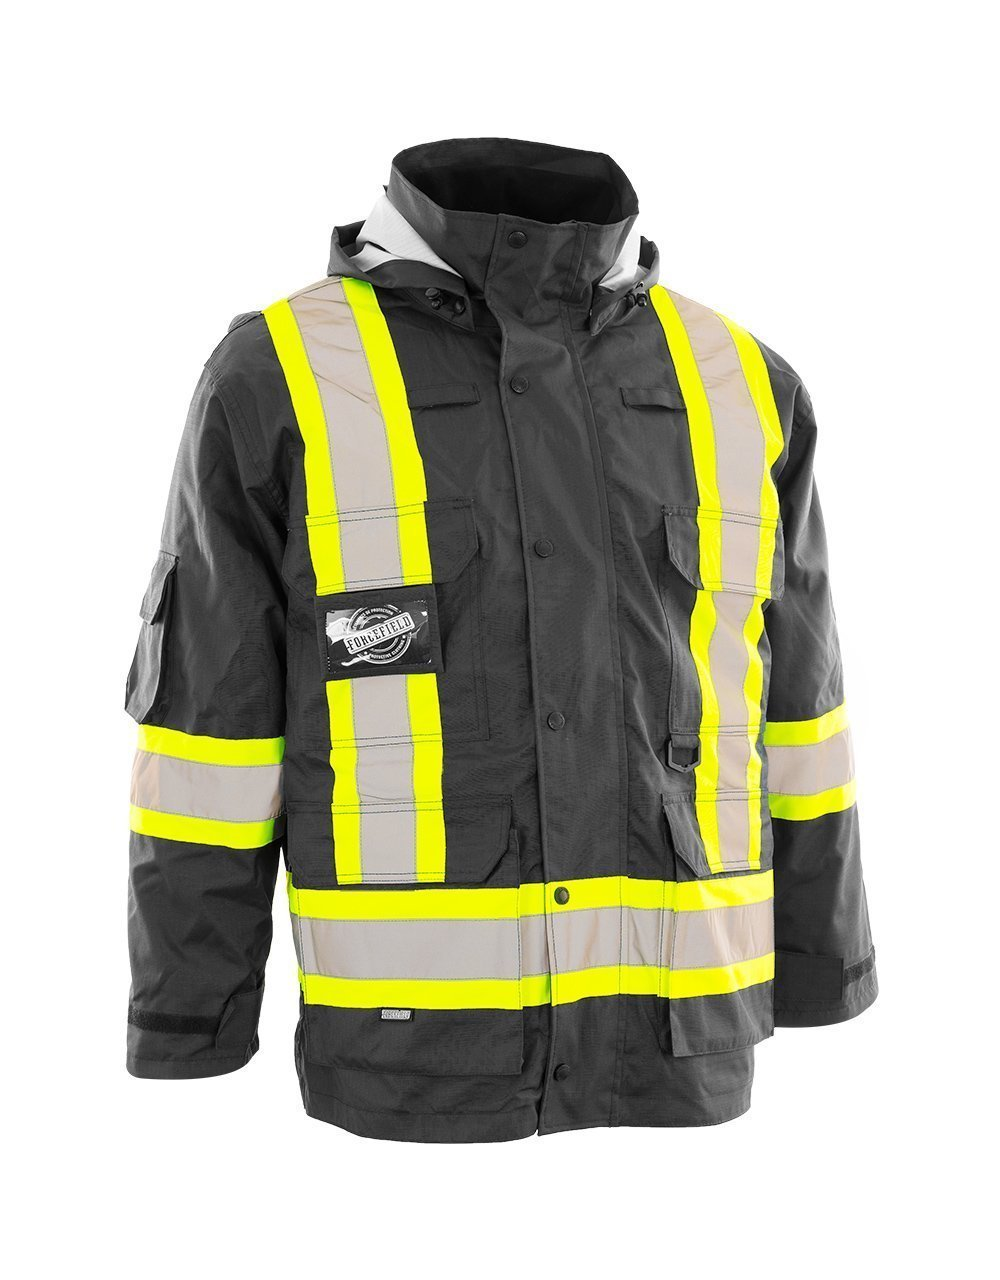 Forcefield Hi-Vis Safety Wind Breaker Jacket - 023-EV148BK